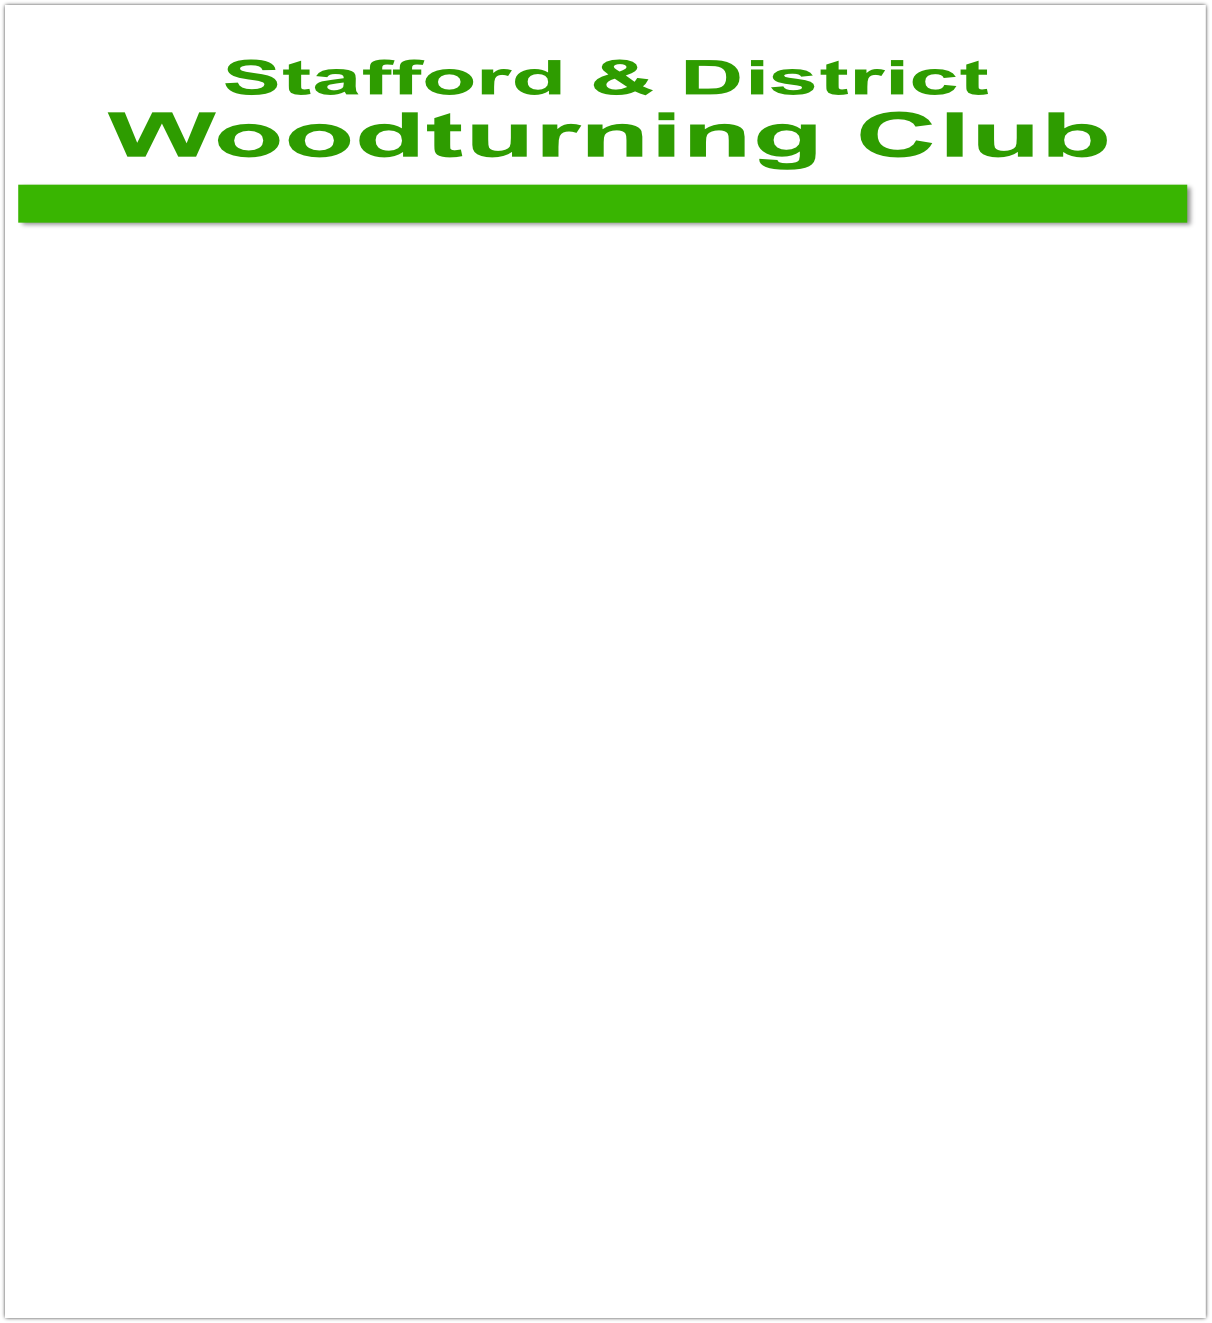 Woodturning Club